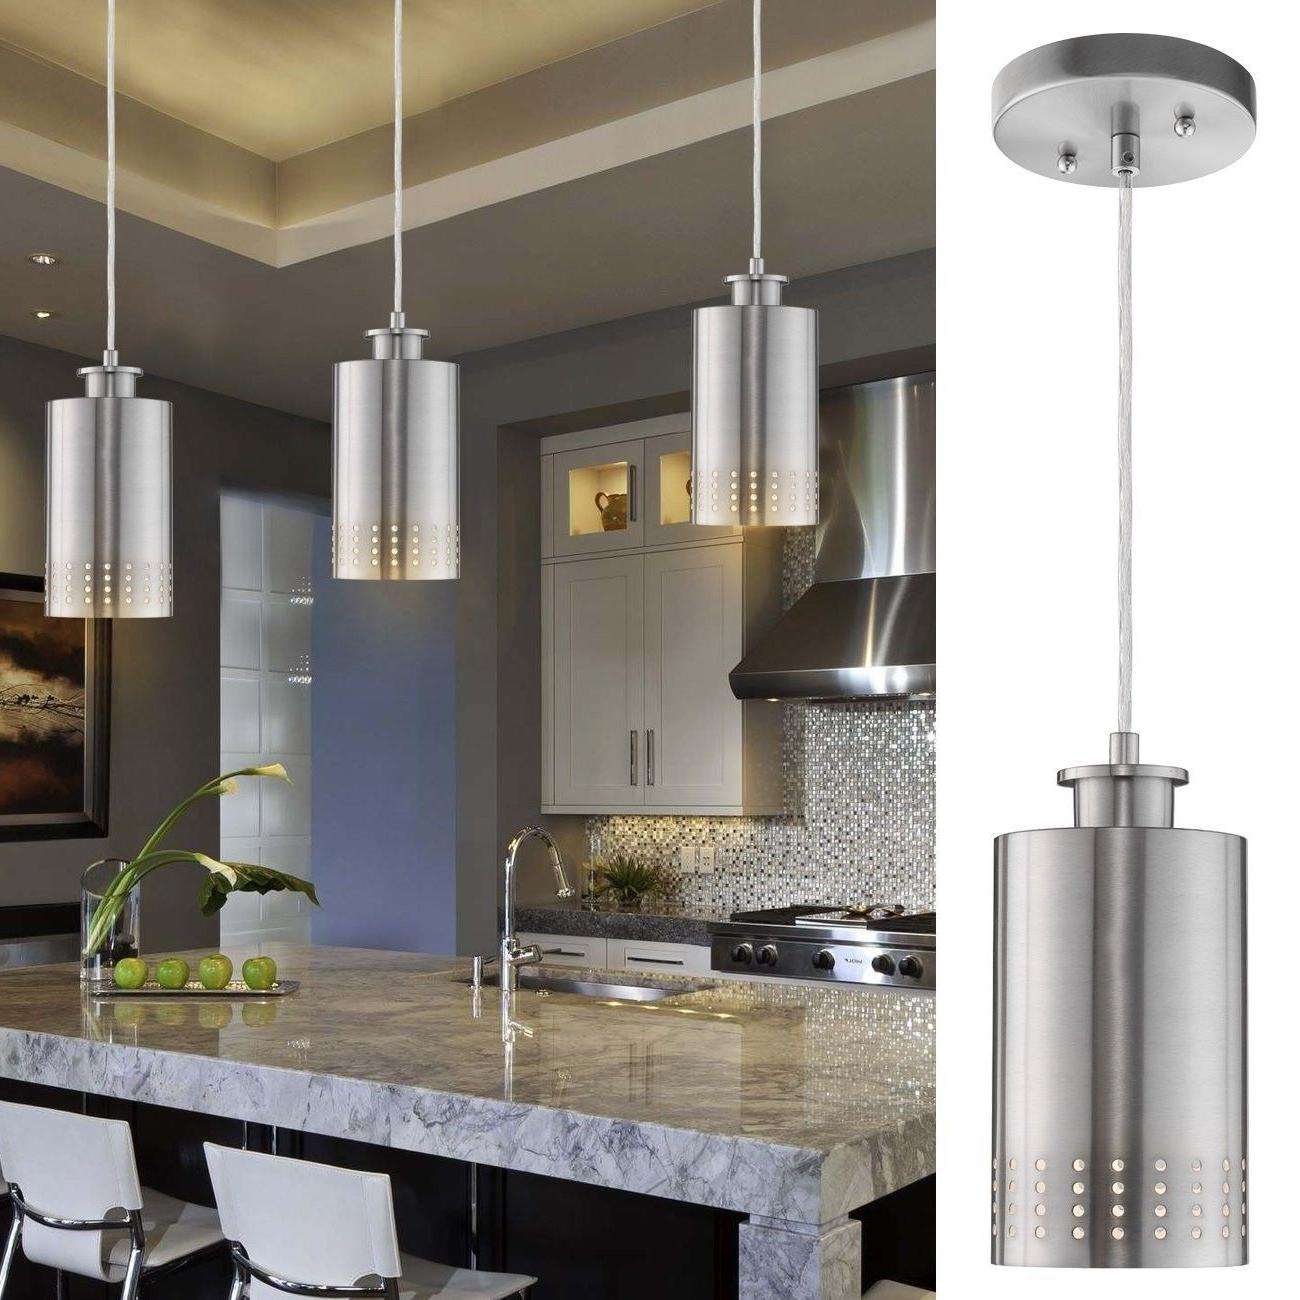 Kitchen Island Pendant Light Fixture Modern Hanging Ceiling